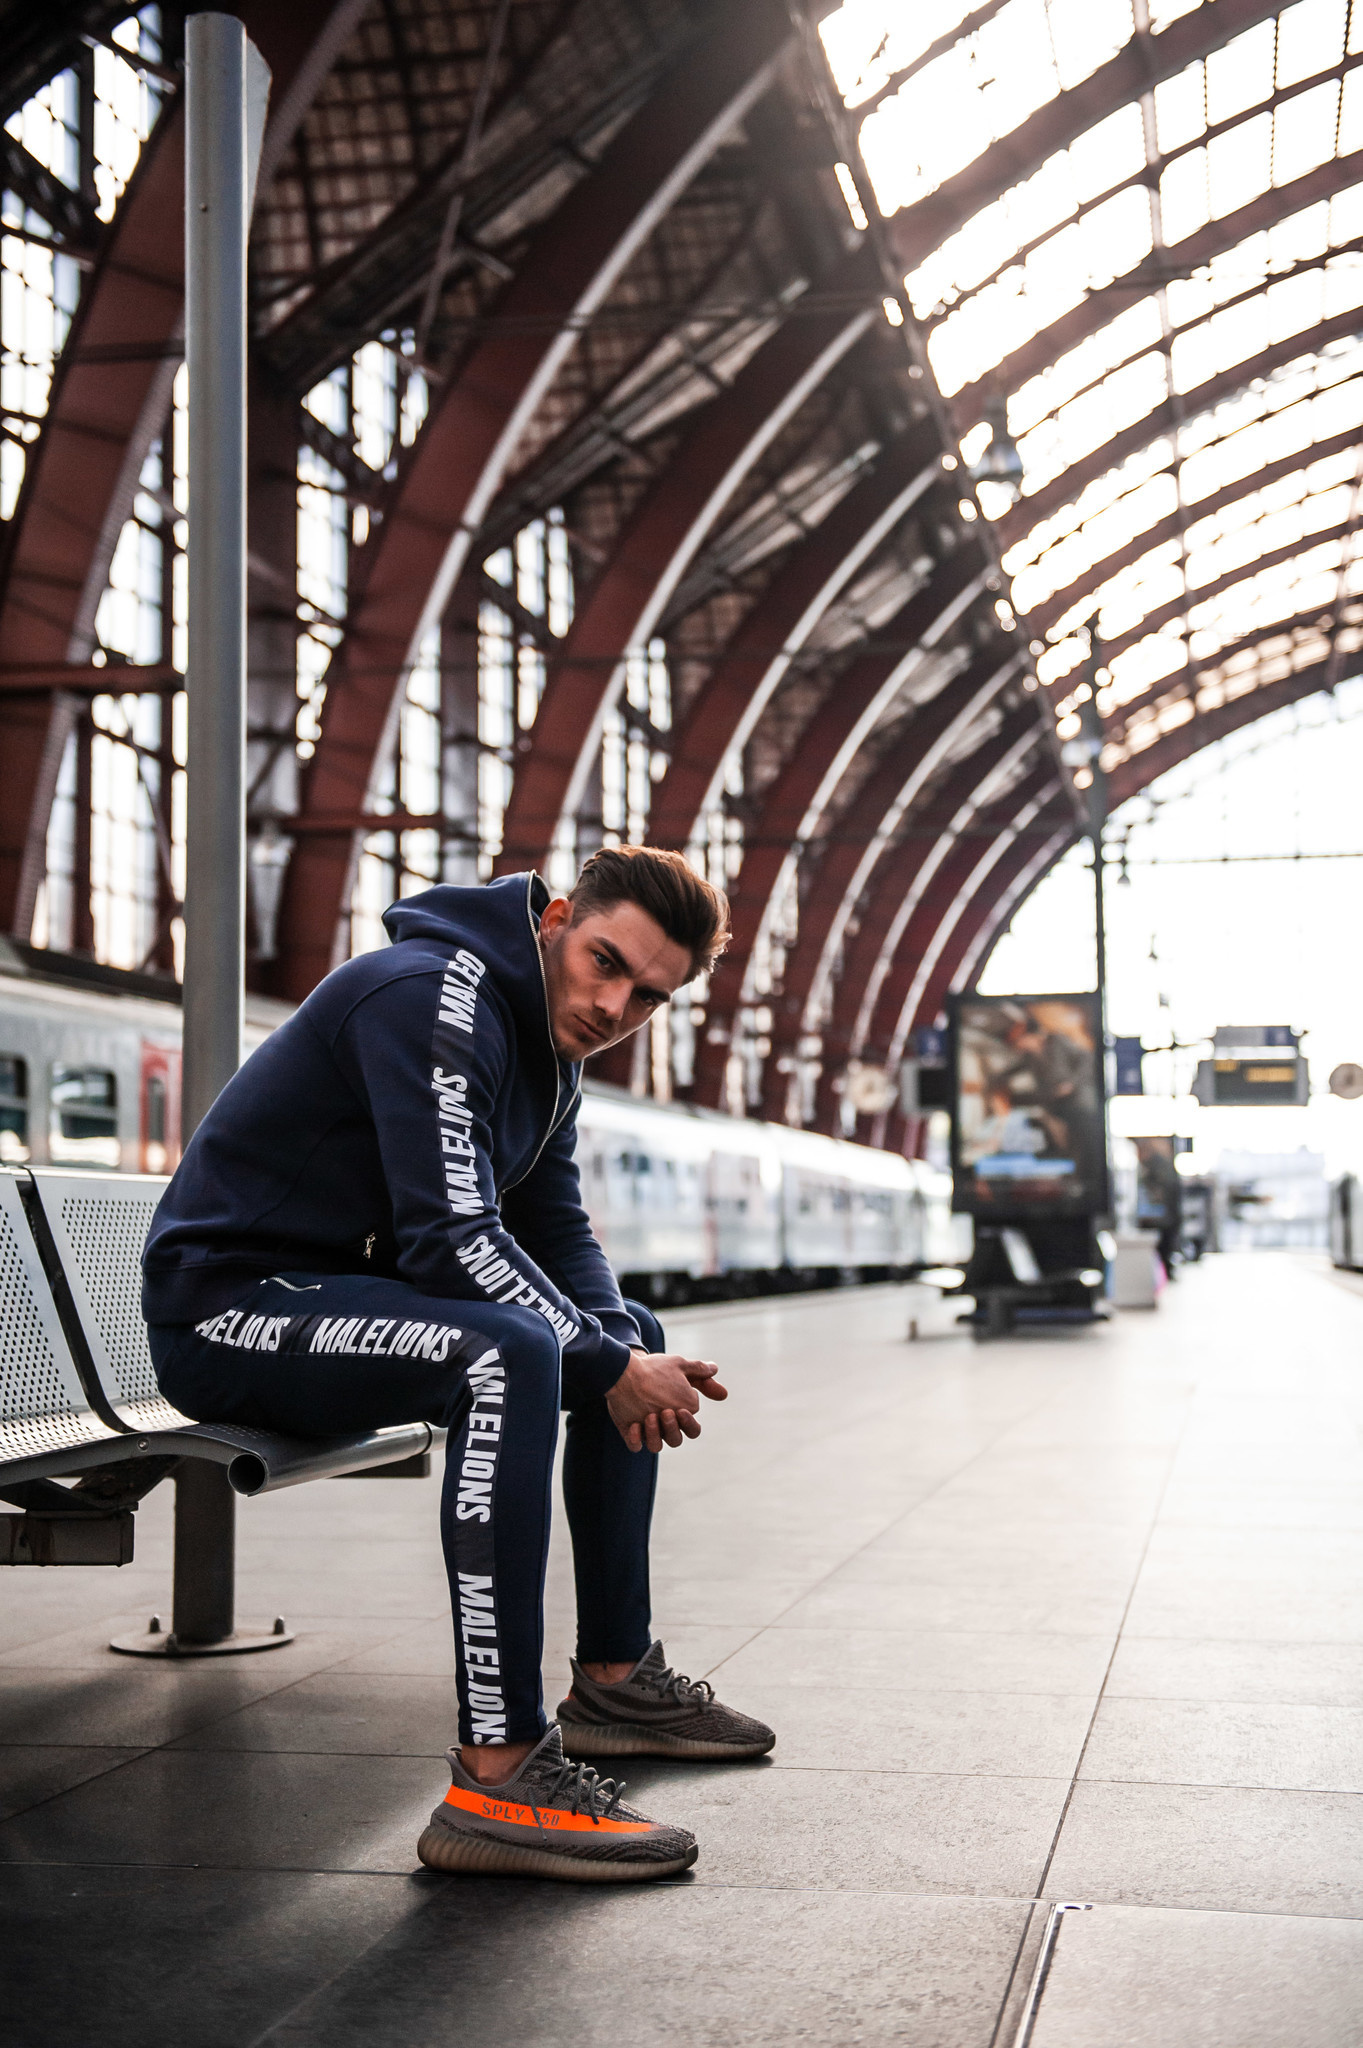 Malelions tracksuit